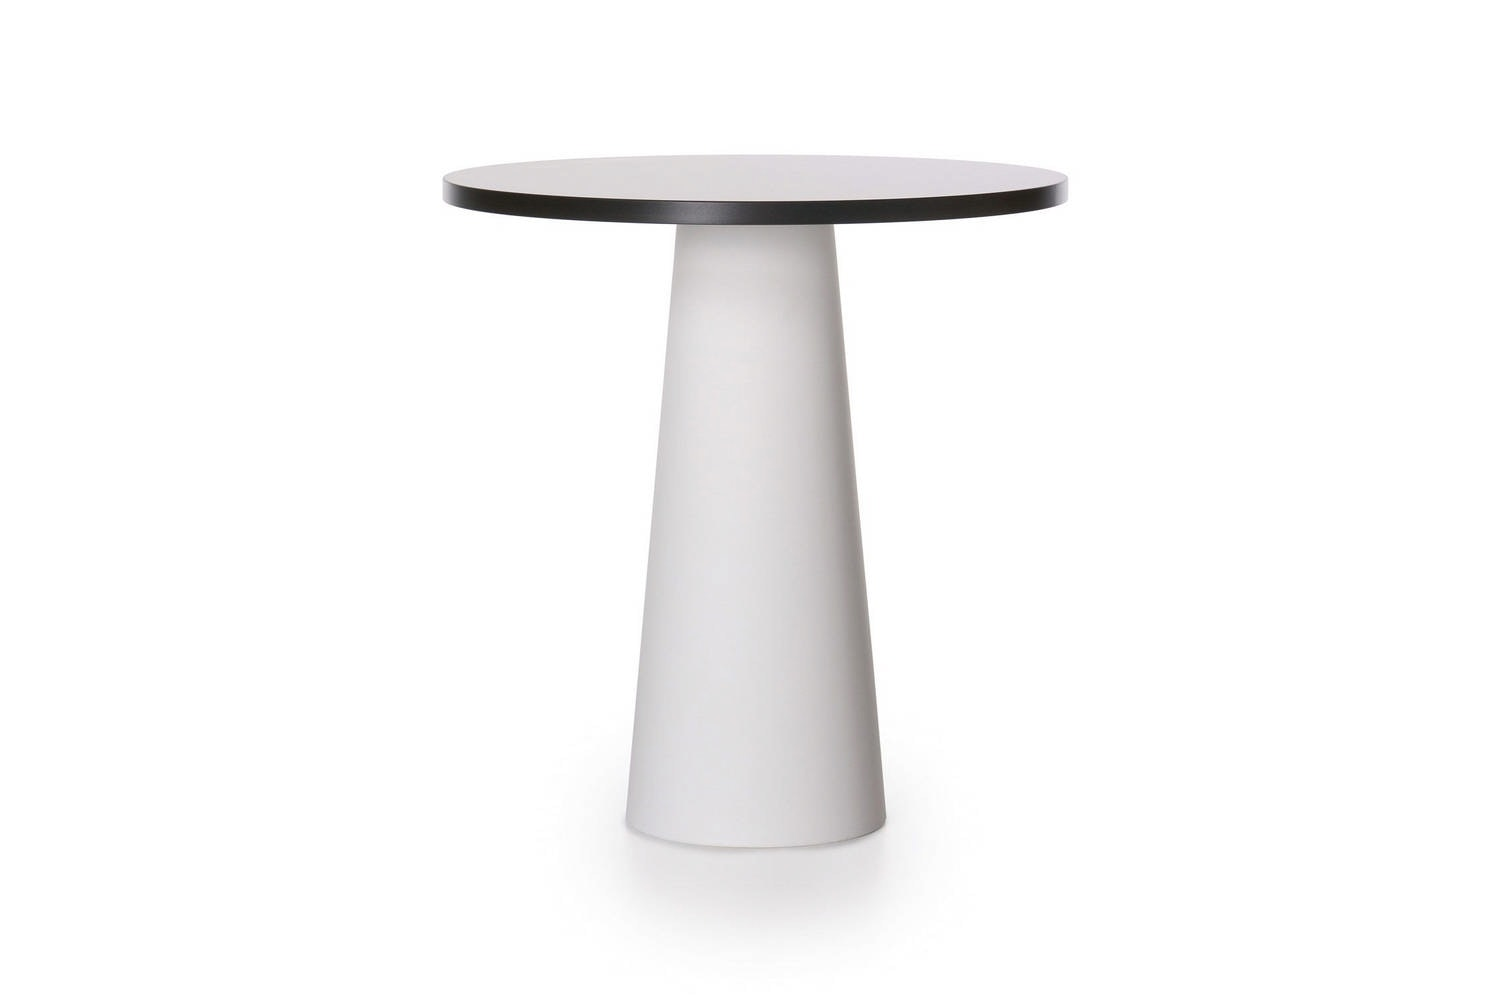 Container Table 7130 by Marcel Wanders for Moooi